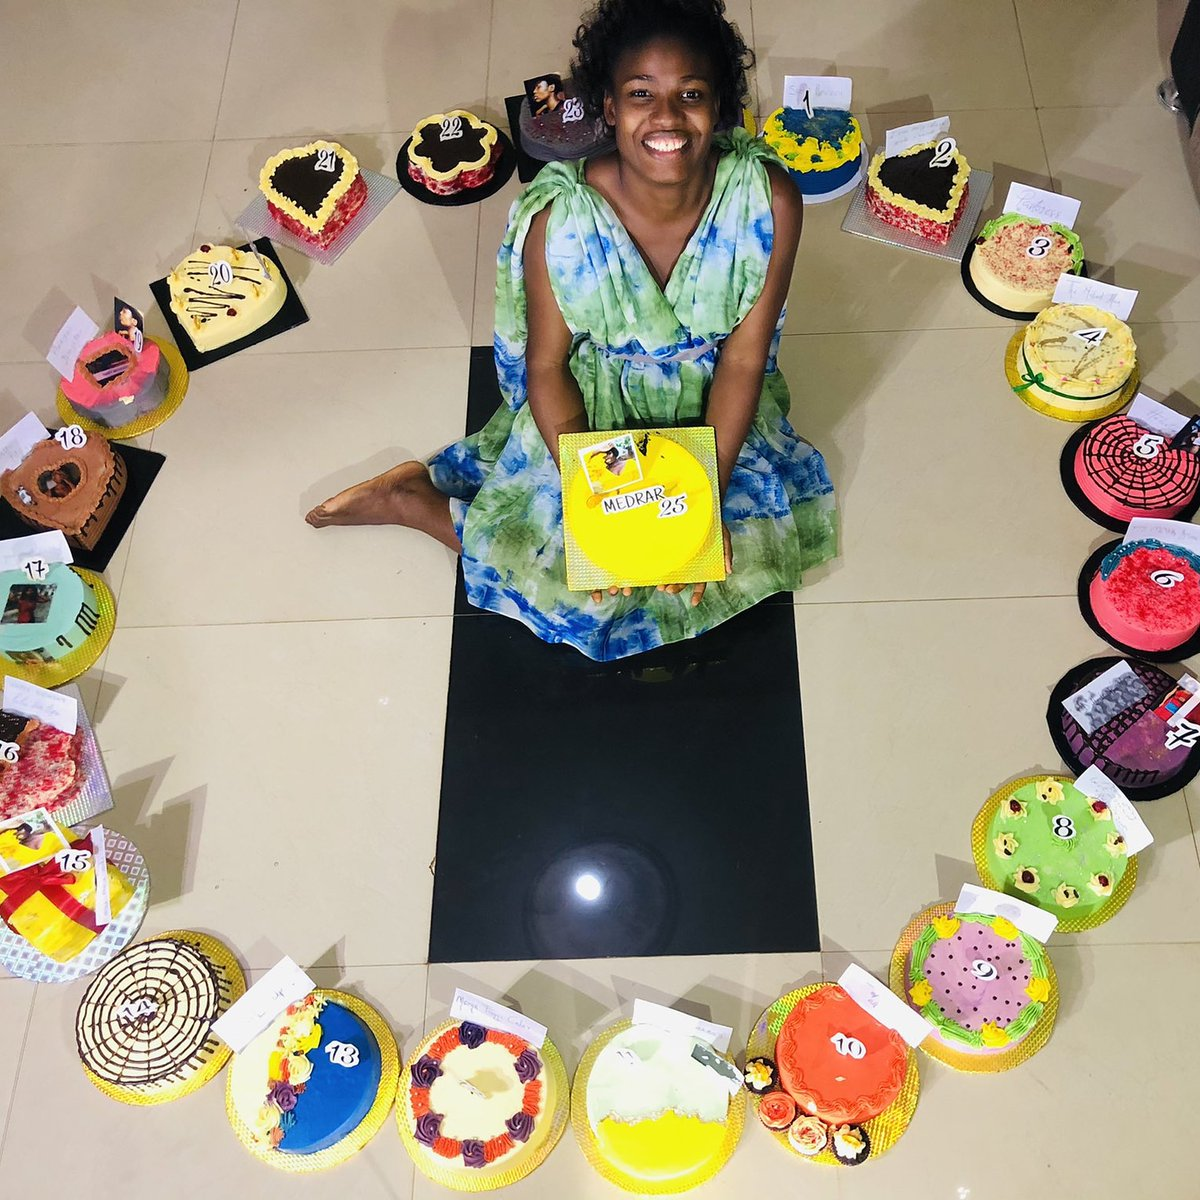 A fashionista on called Funmi took to Twitter to share 25 birthday cakes she received on her 25th birthday.  How exciting!  📸: @thefunmicoker (Twitter)  #legitng #legitpost #sundayvibes #sundayfunday